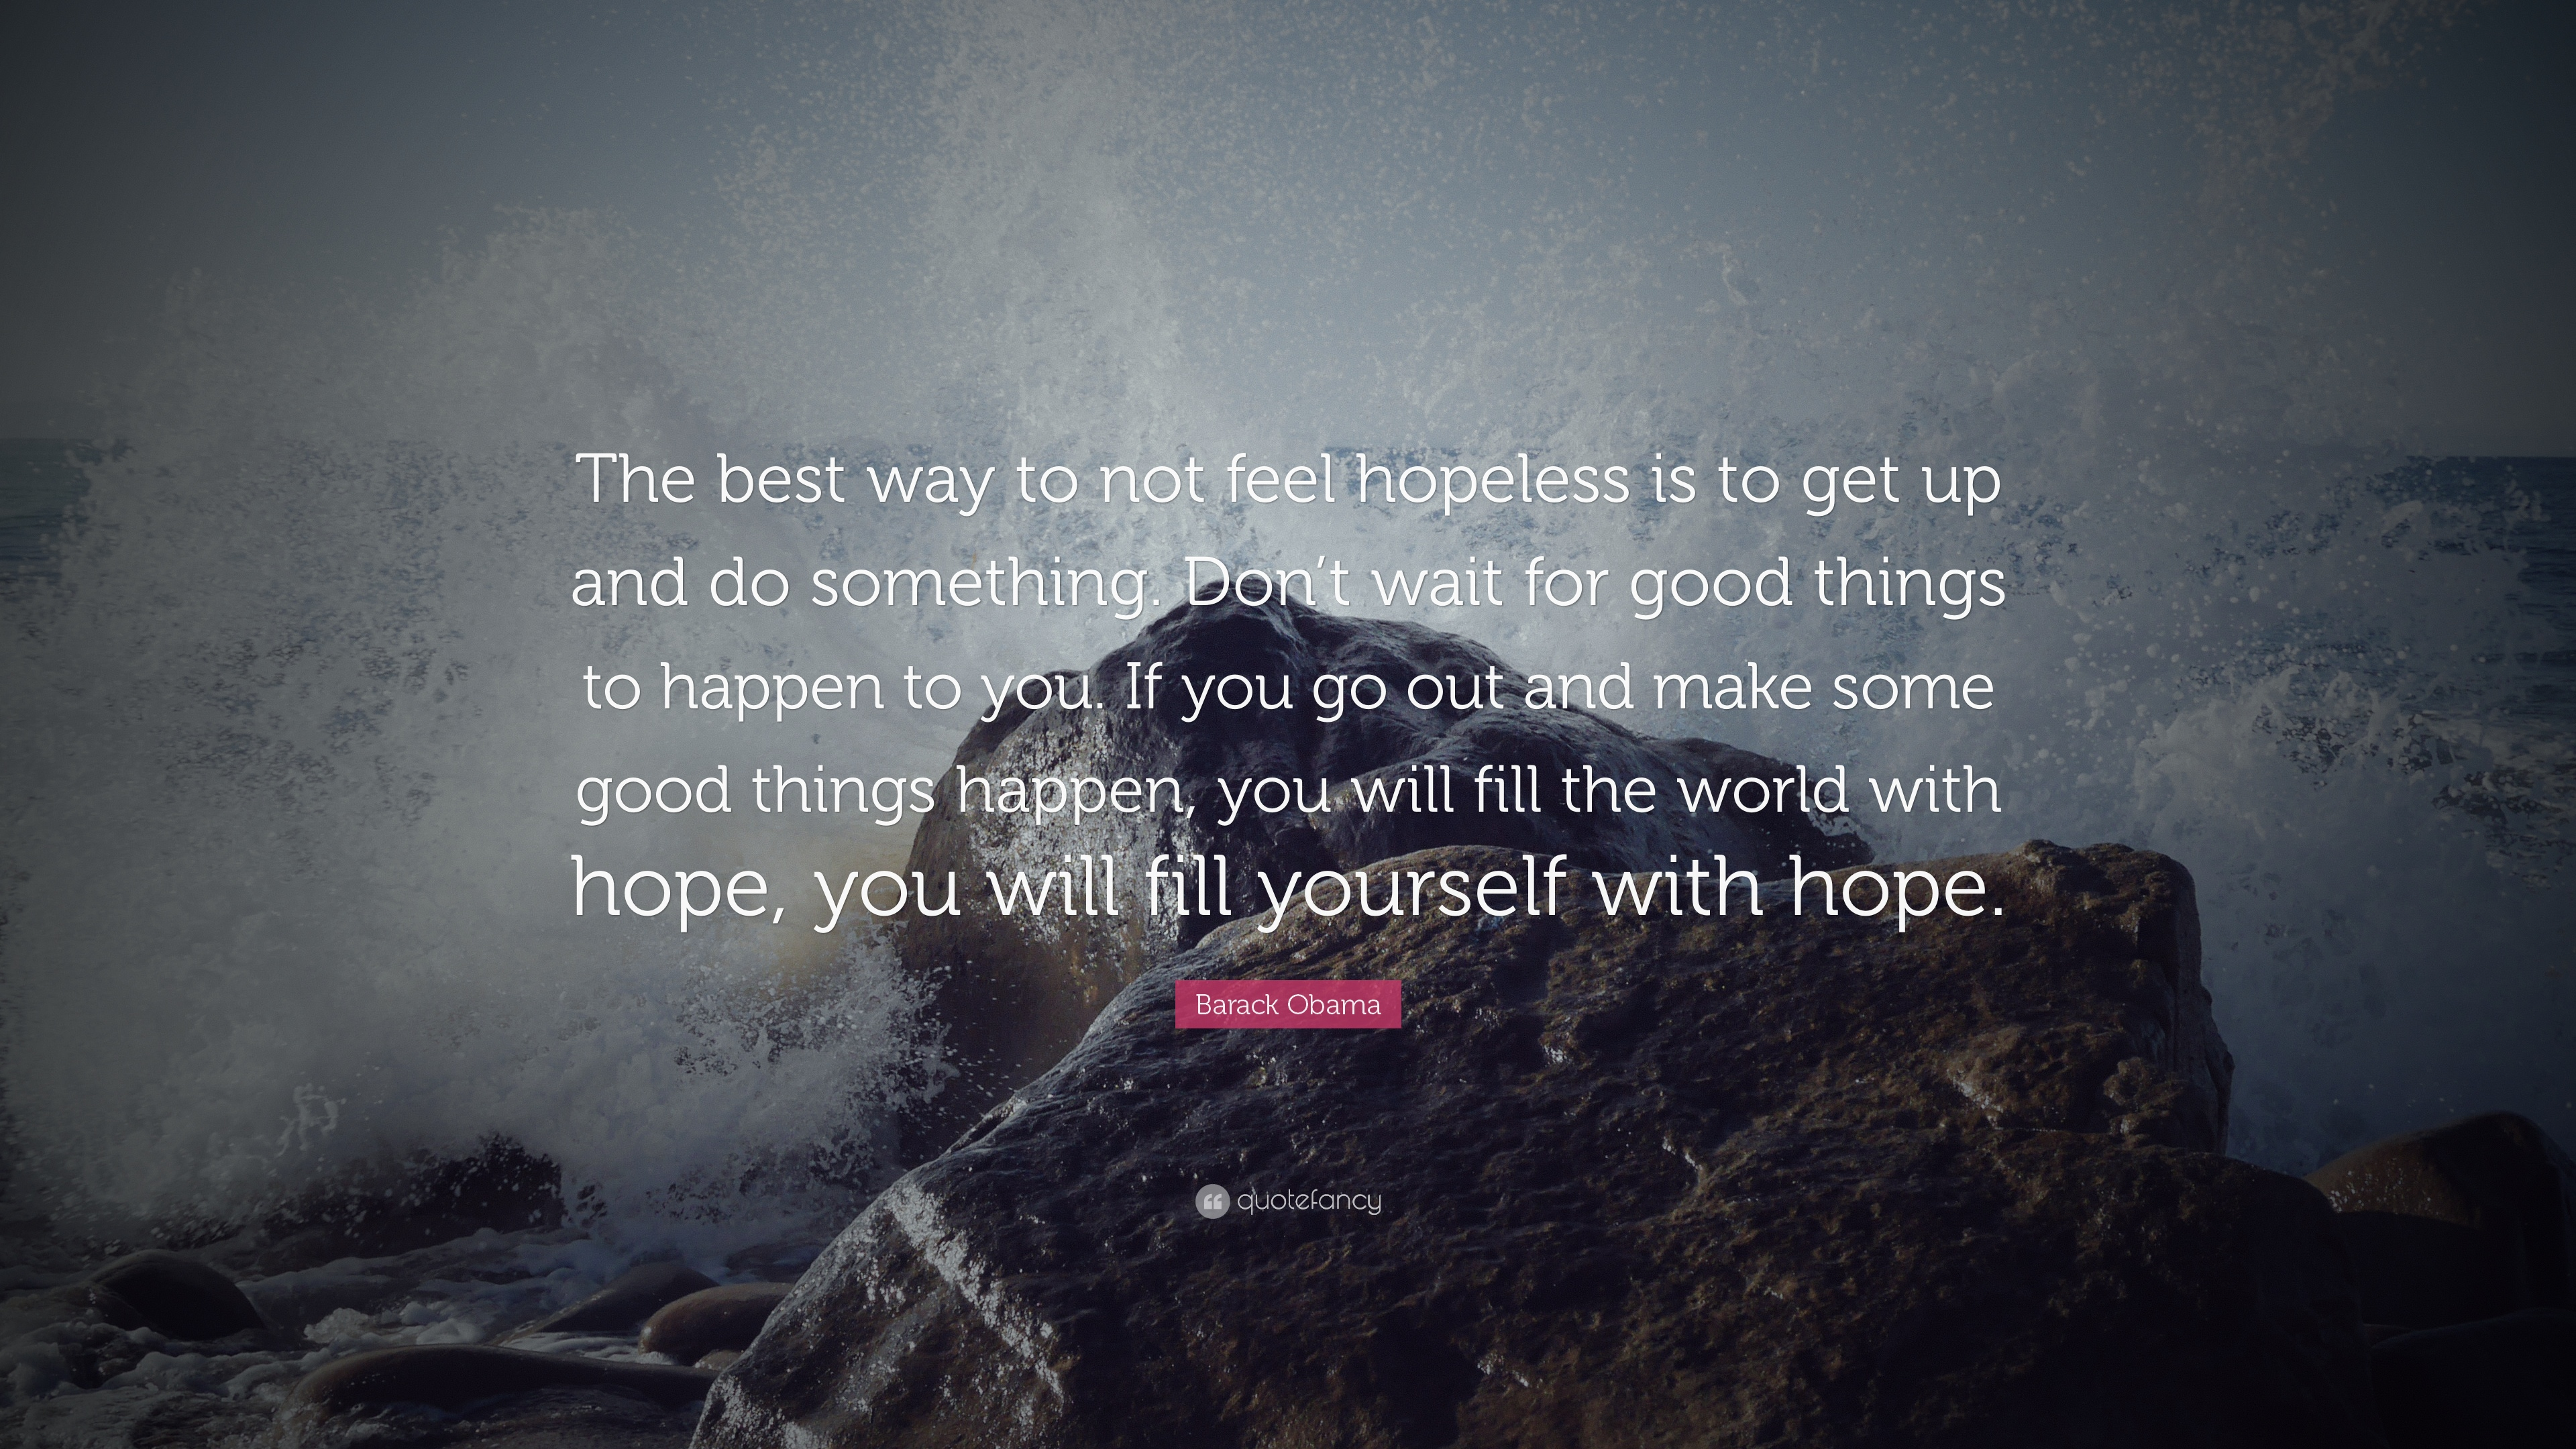 ... The Best Way To Not Feel Hopeless Is To Get Up And Do Something Don T